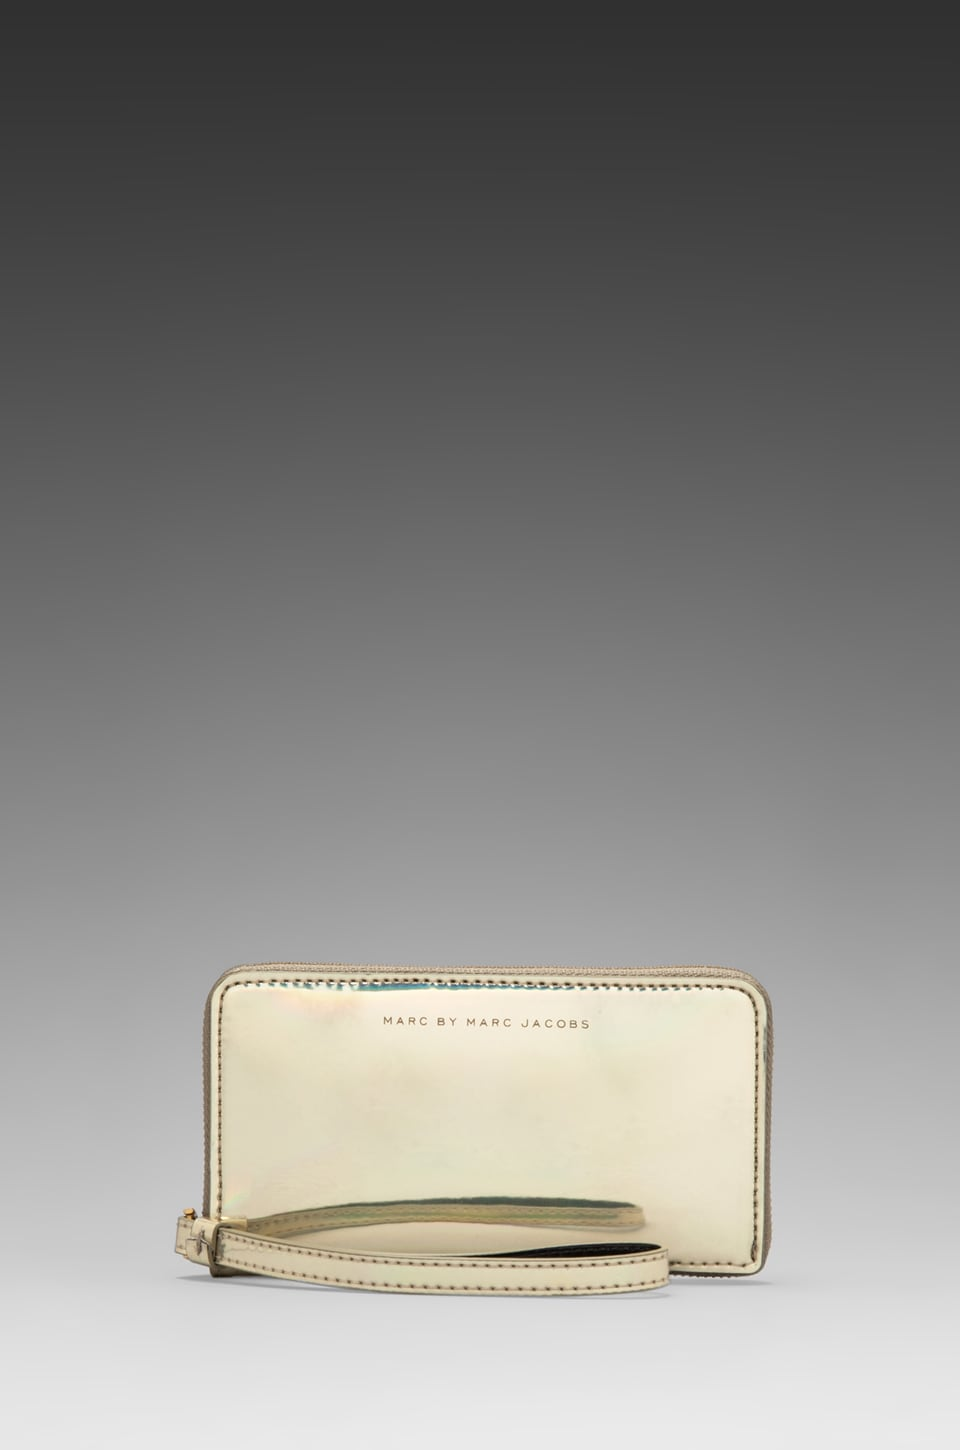 Marc by Marc Jacobs Techno Wingman Wallet in Pale Gold Holographic